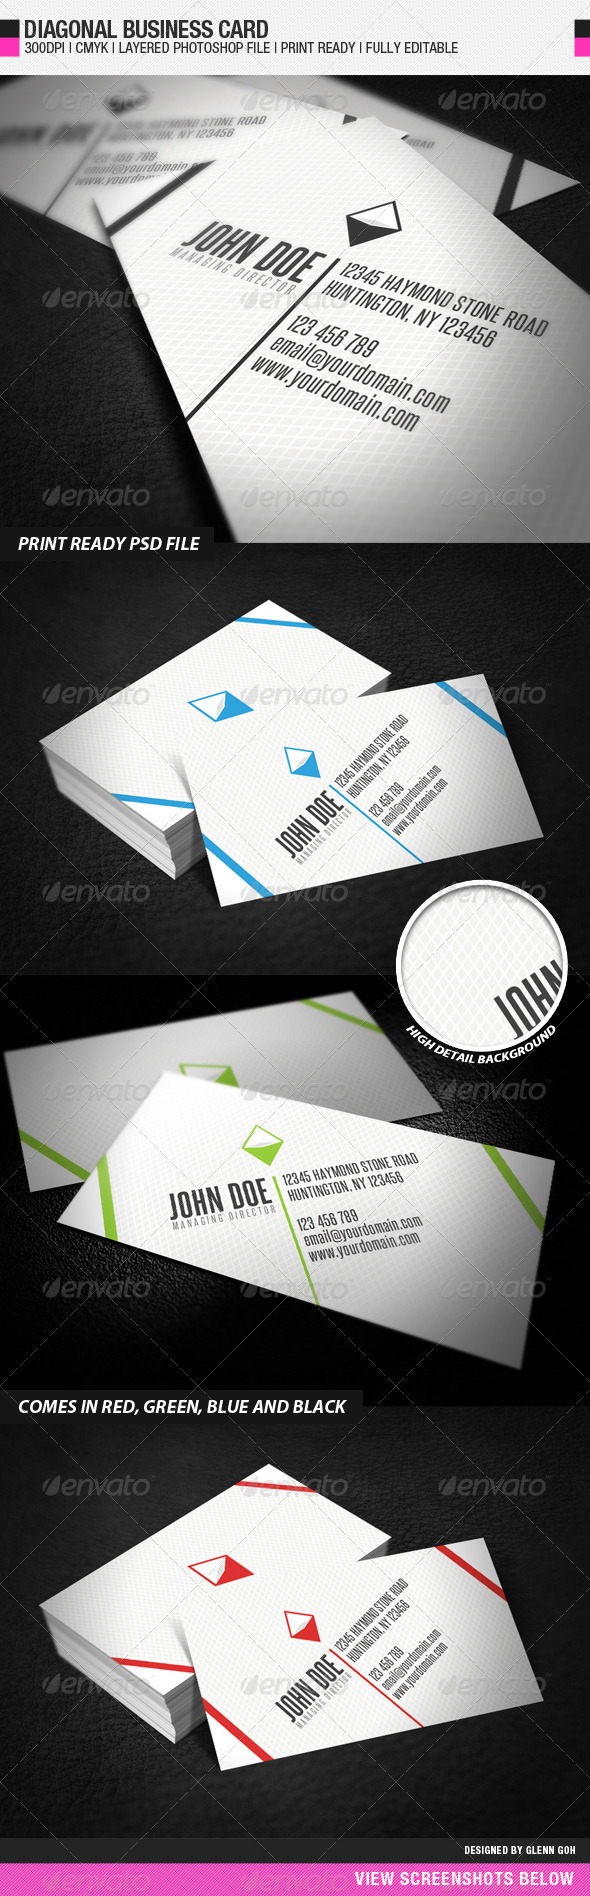 GraphicRiver Diagonal Business Card 581913